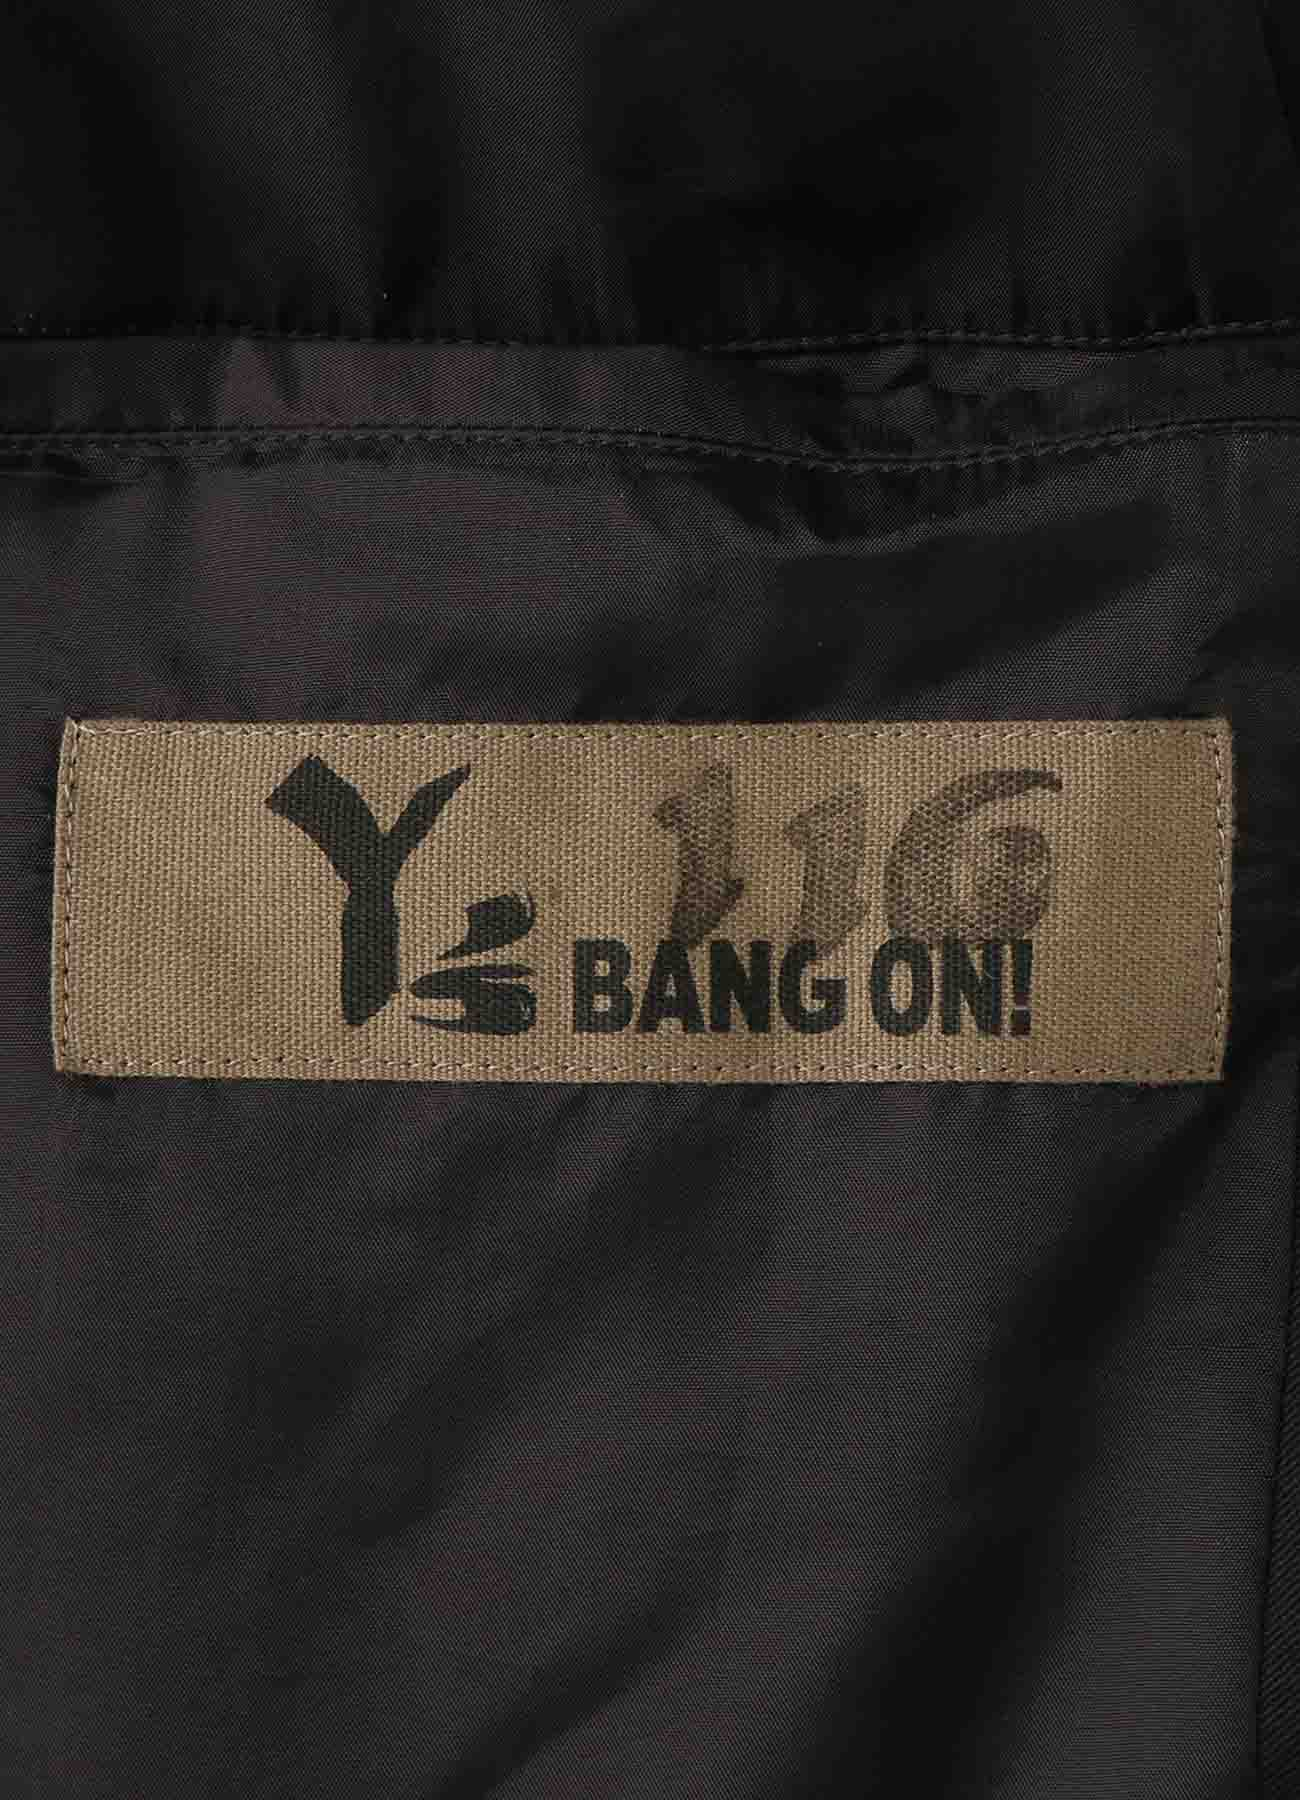 Y's BANG ON!No.116 Western style-jacket Cotton twill